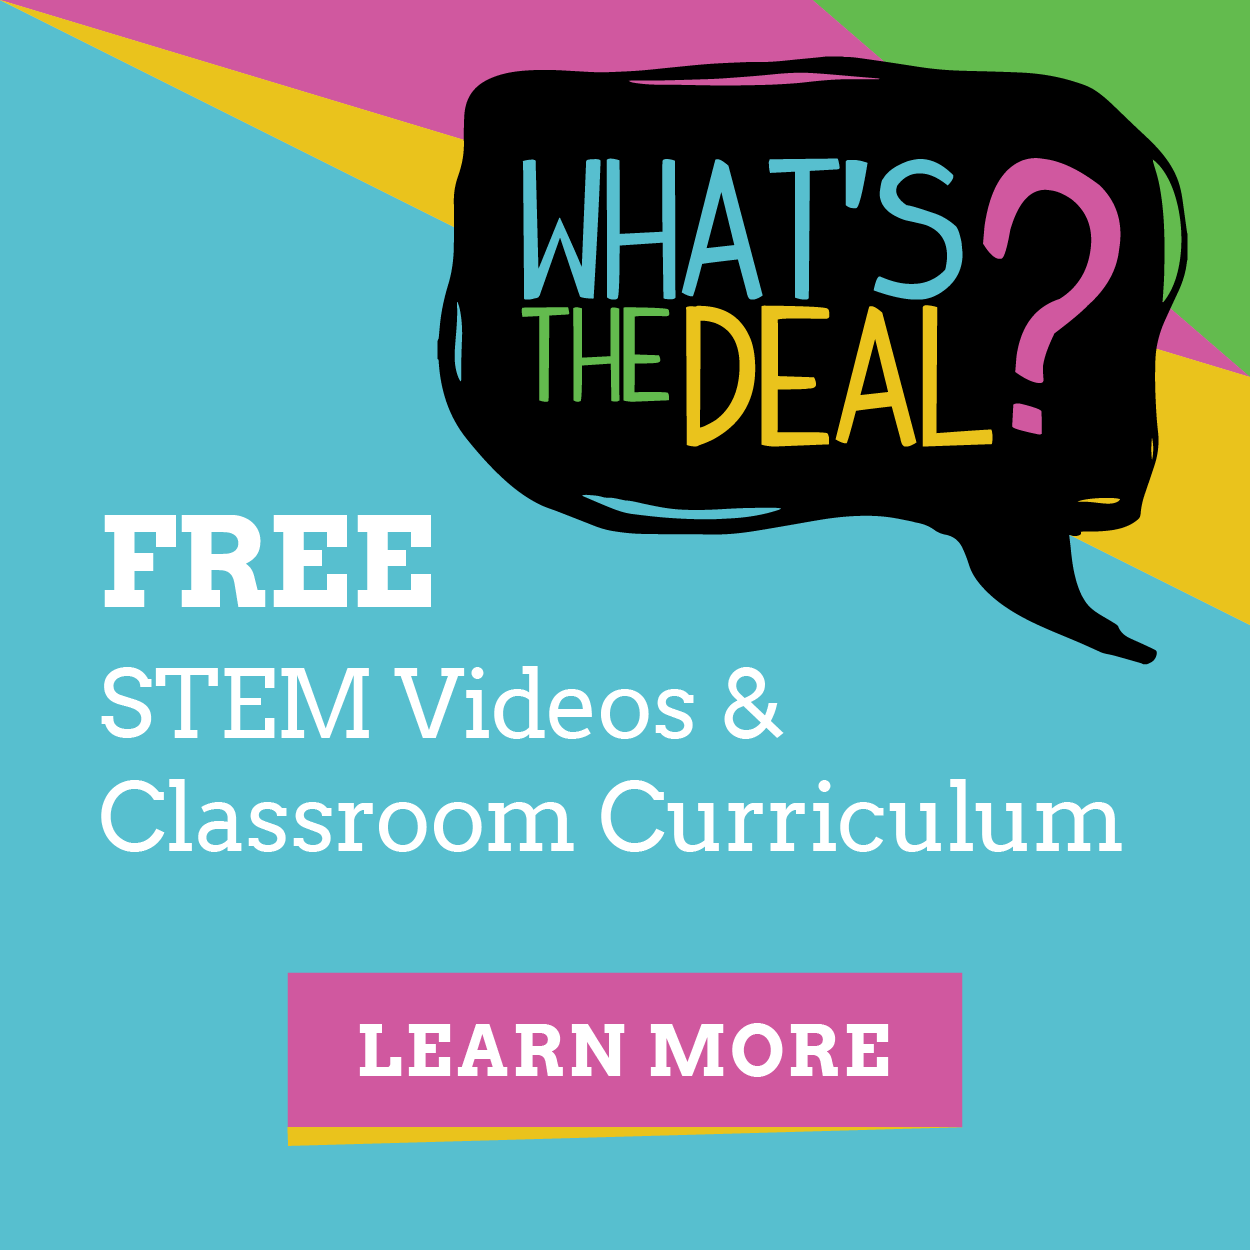 FREE STEM Curriculum for Teachers